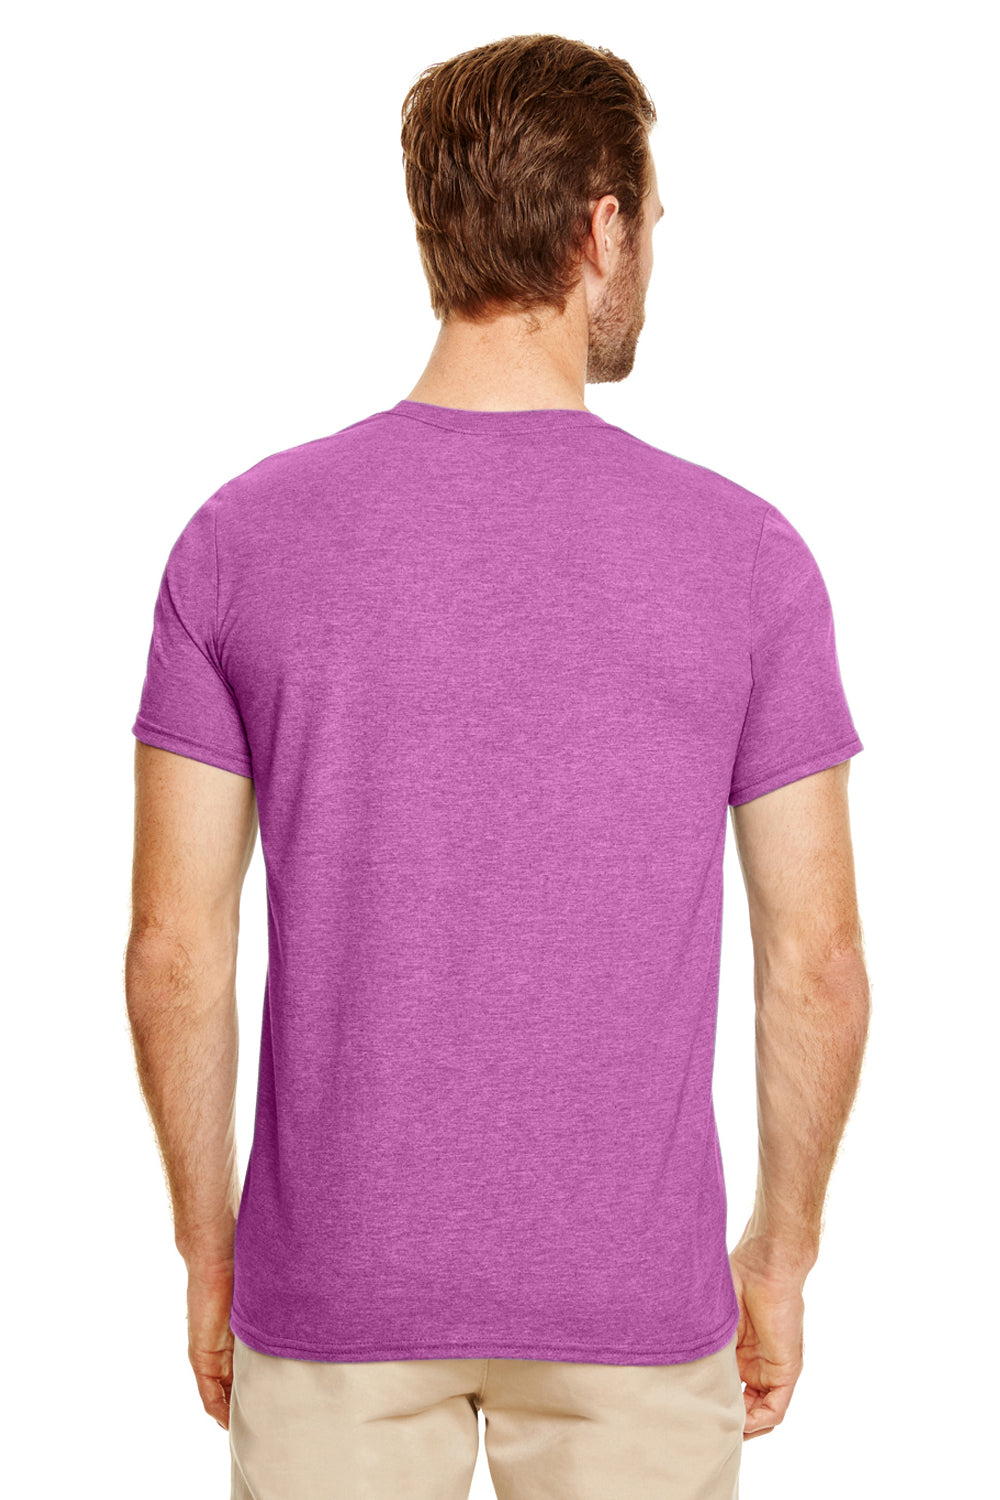 Gildan G640 Mens Softstyle Short Sleeve Crewneck T-Shirt Heather Orchid Purple Back